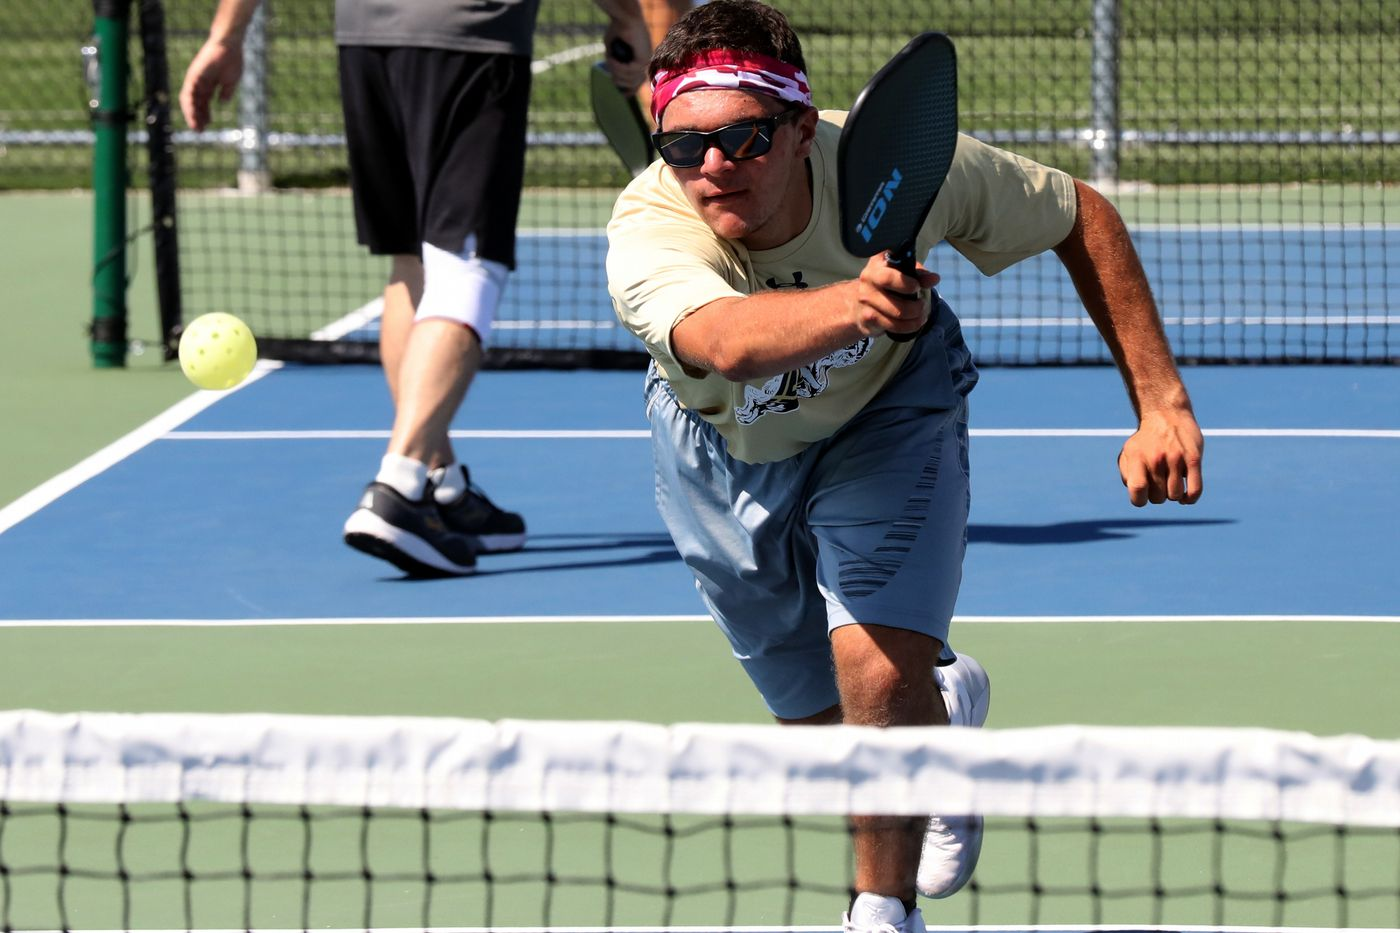 Ocean City and the most cutthroat pickleball game at the Jersey Shore